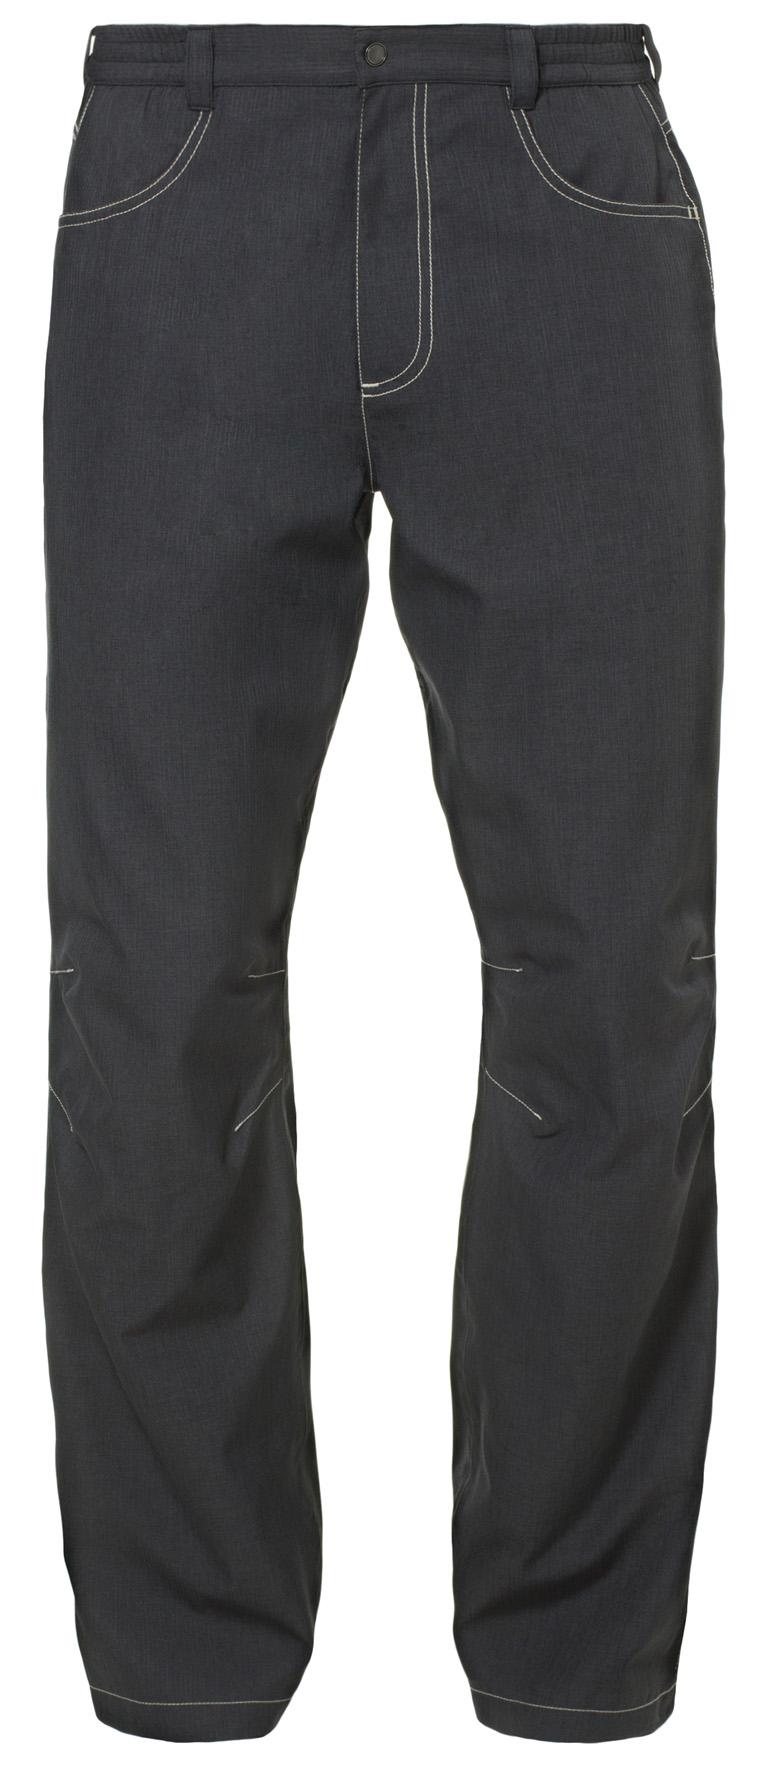 Men´s Homy Rainpants black Größe XXXL-Long - schneider-sports